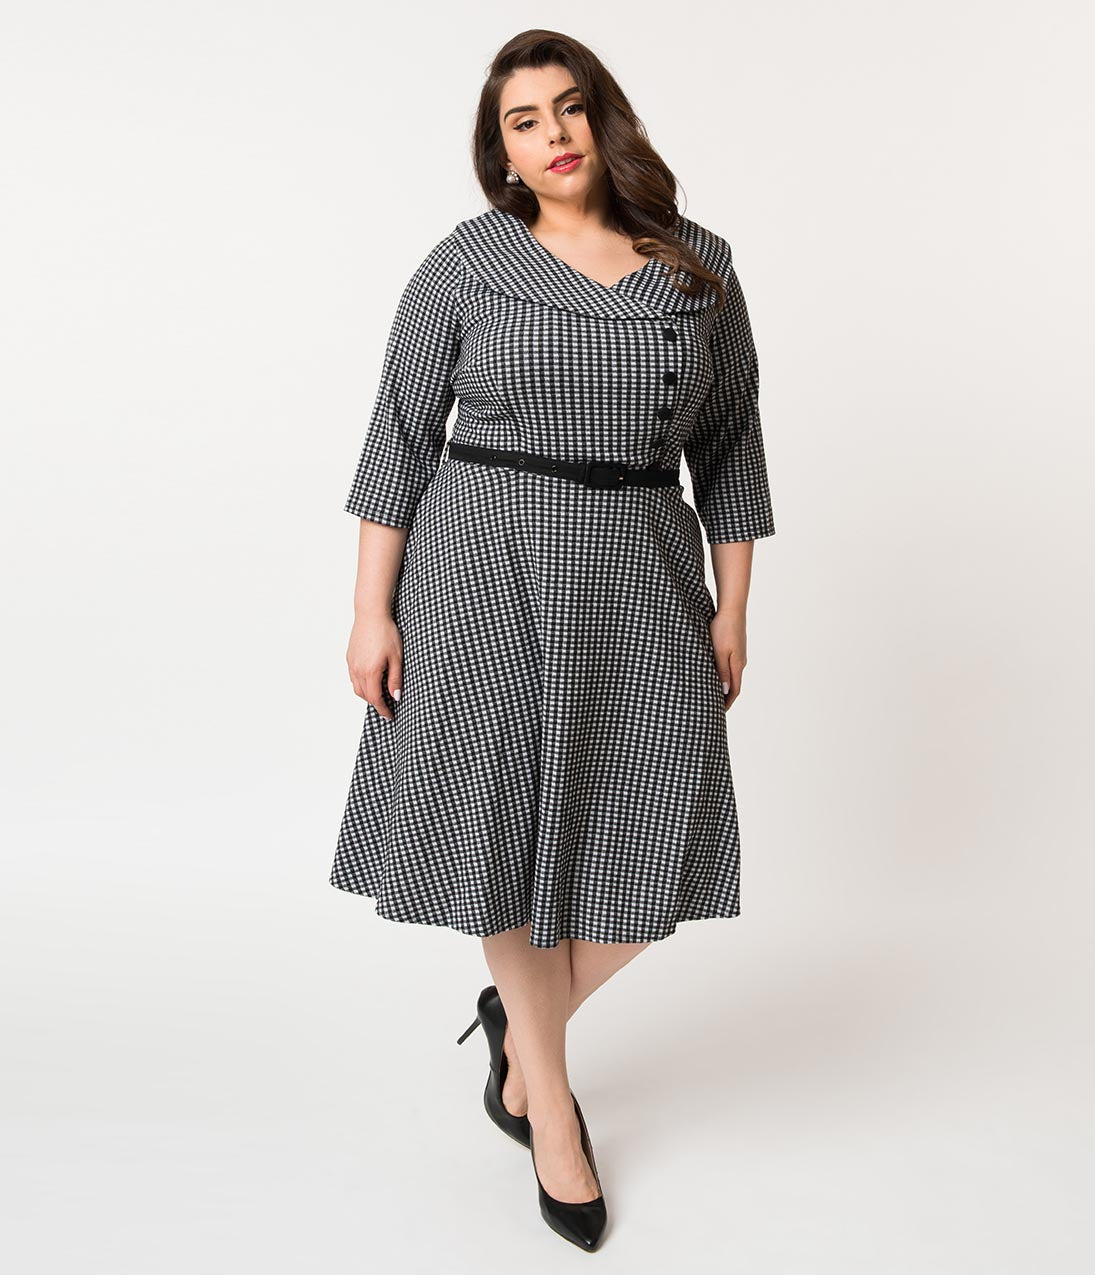 1950s Plus Size Dresses, Clothing and Costumes 1950S Black  White Gingham Knit Aubrey Swing Dress $66.00 AT vintagedancer.com